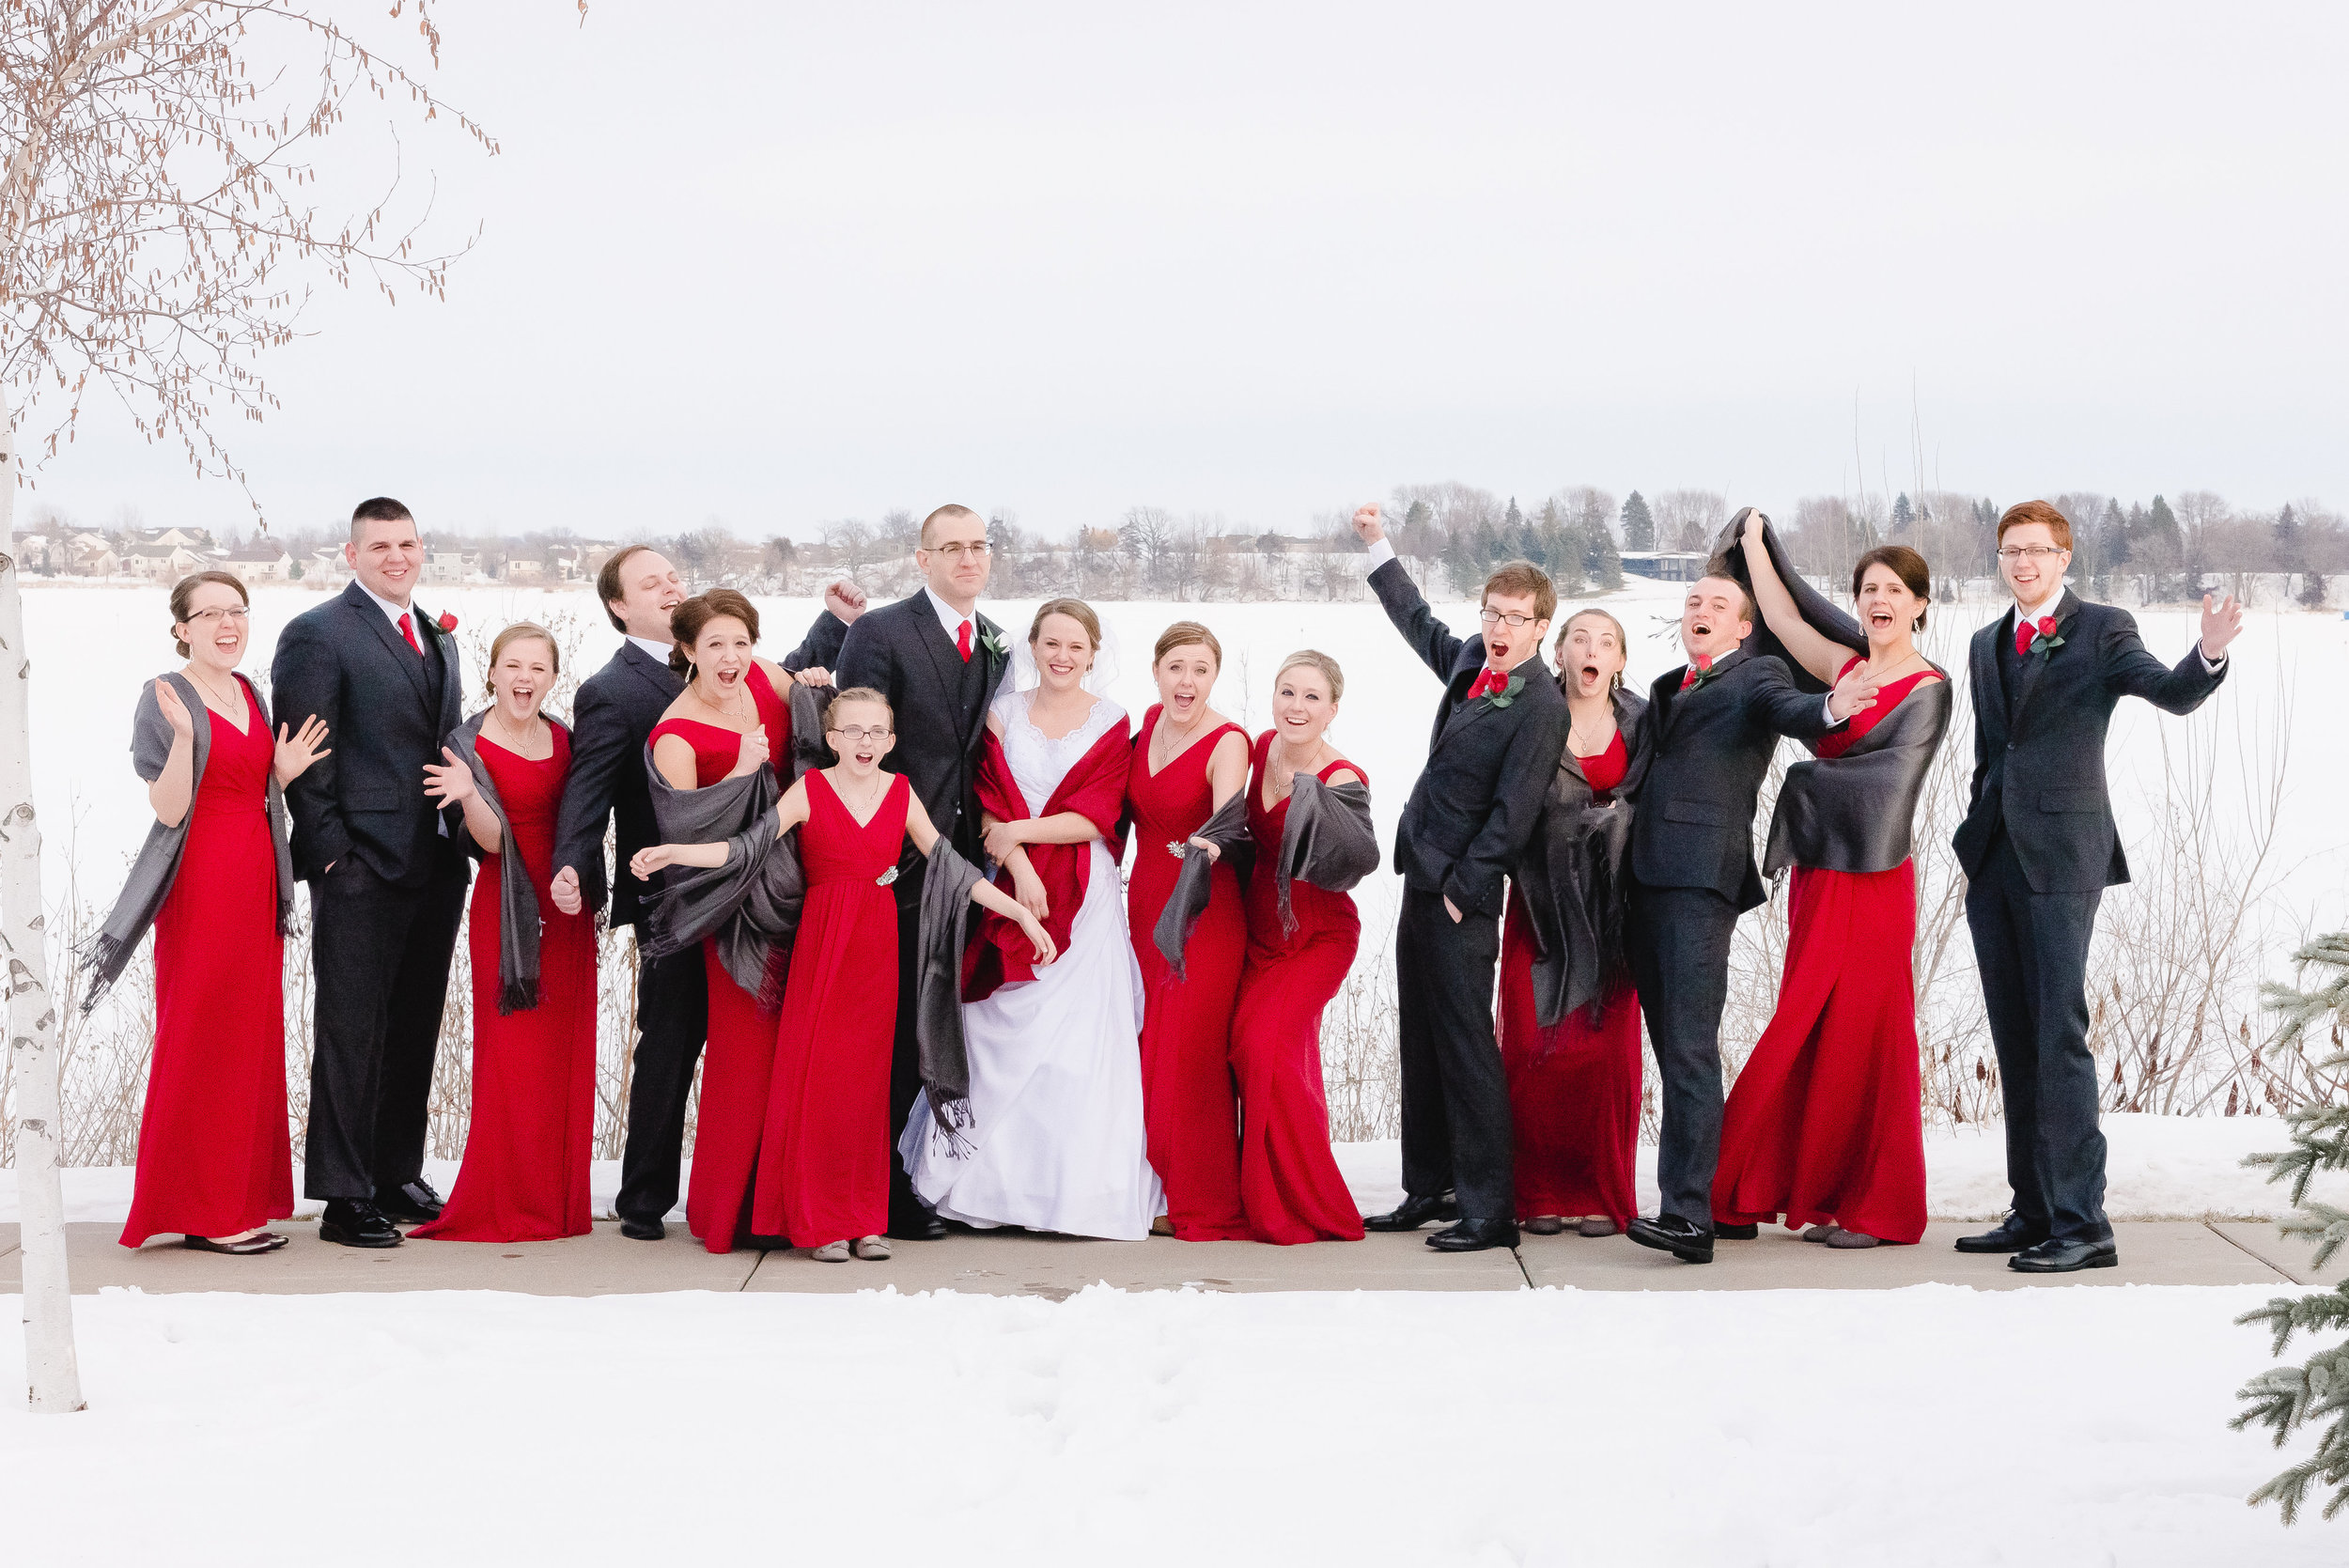 Snowy Red and Black Minnesota Winter Bridal Party Photo at Winsted Lake - Winsted, MN Wedding Photographer